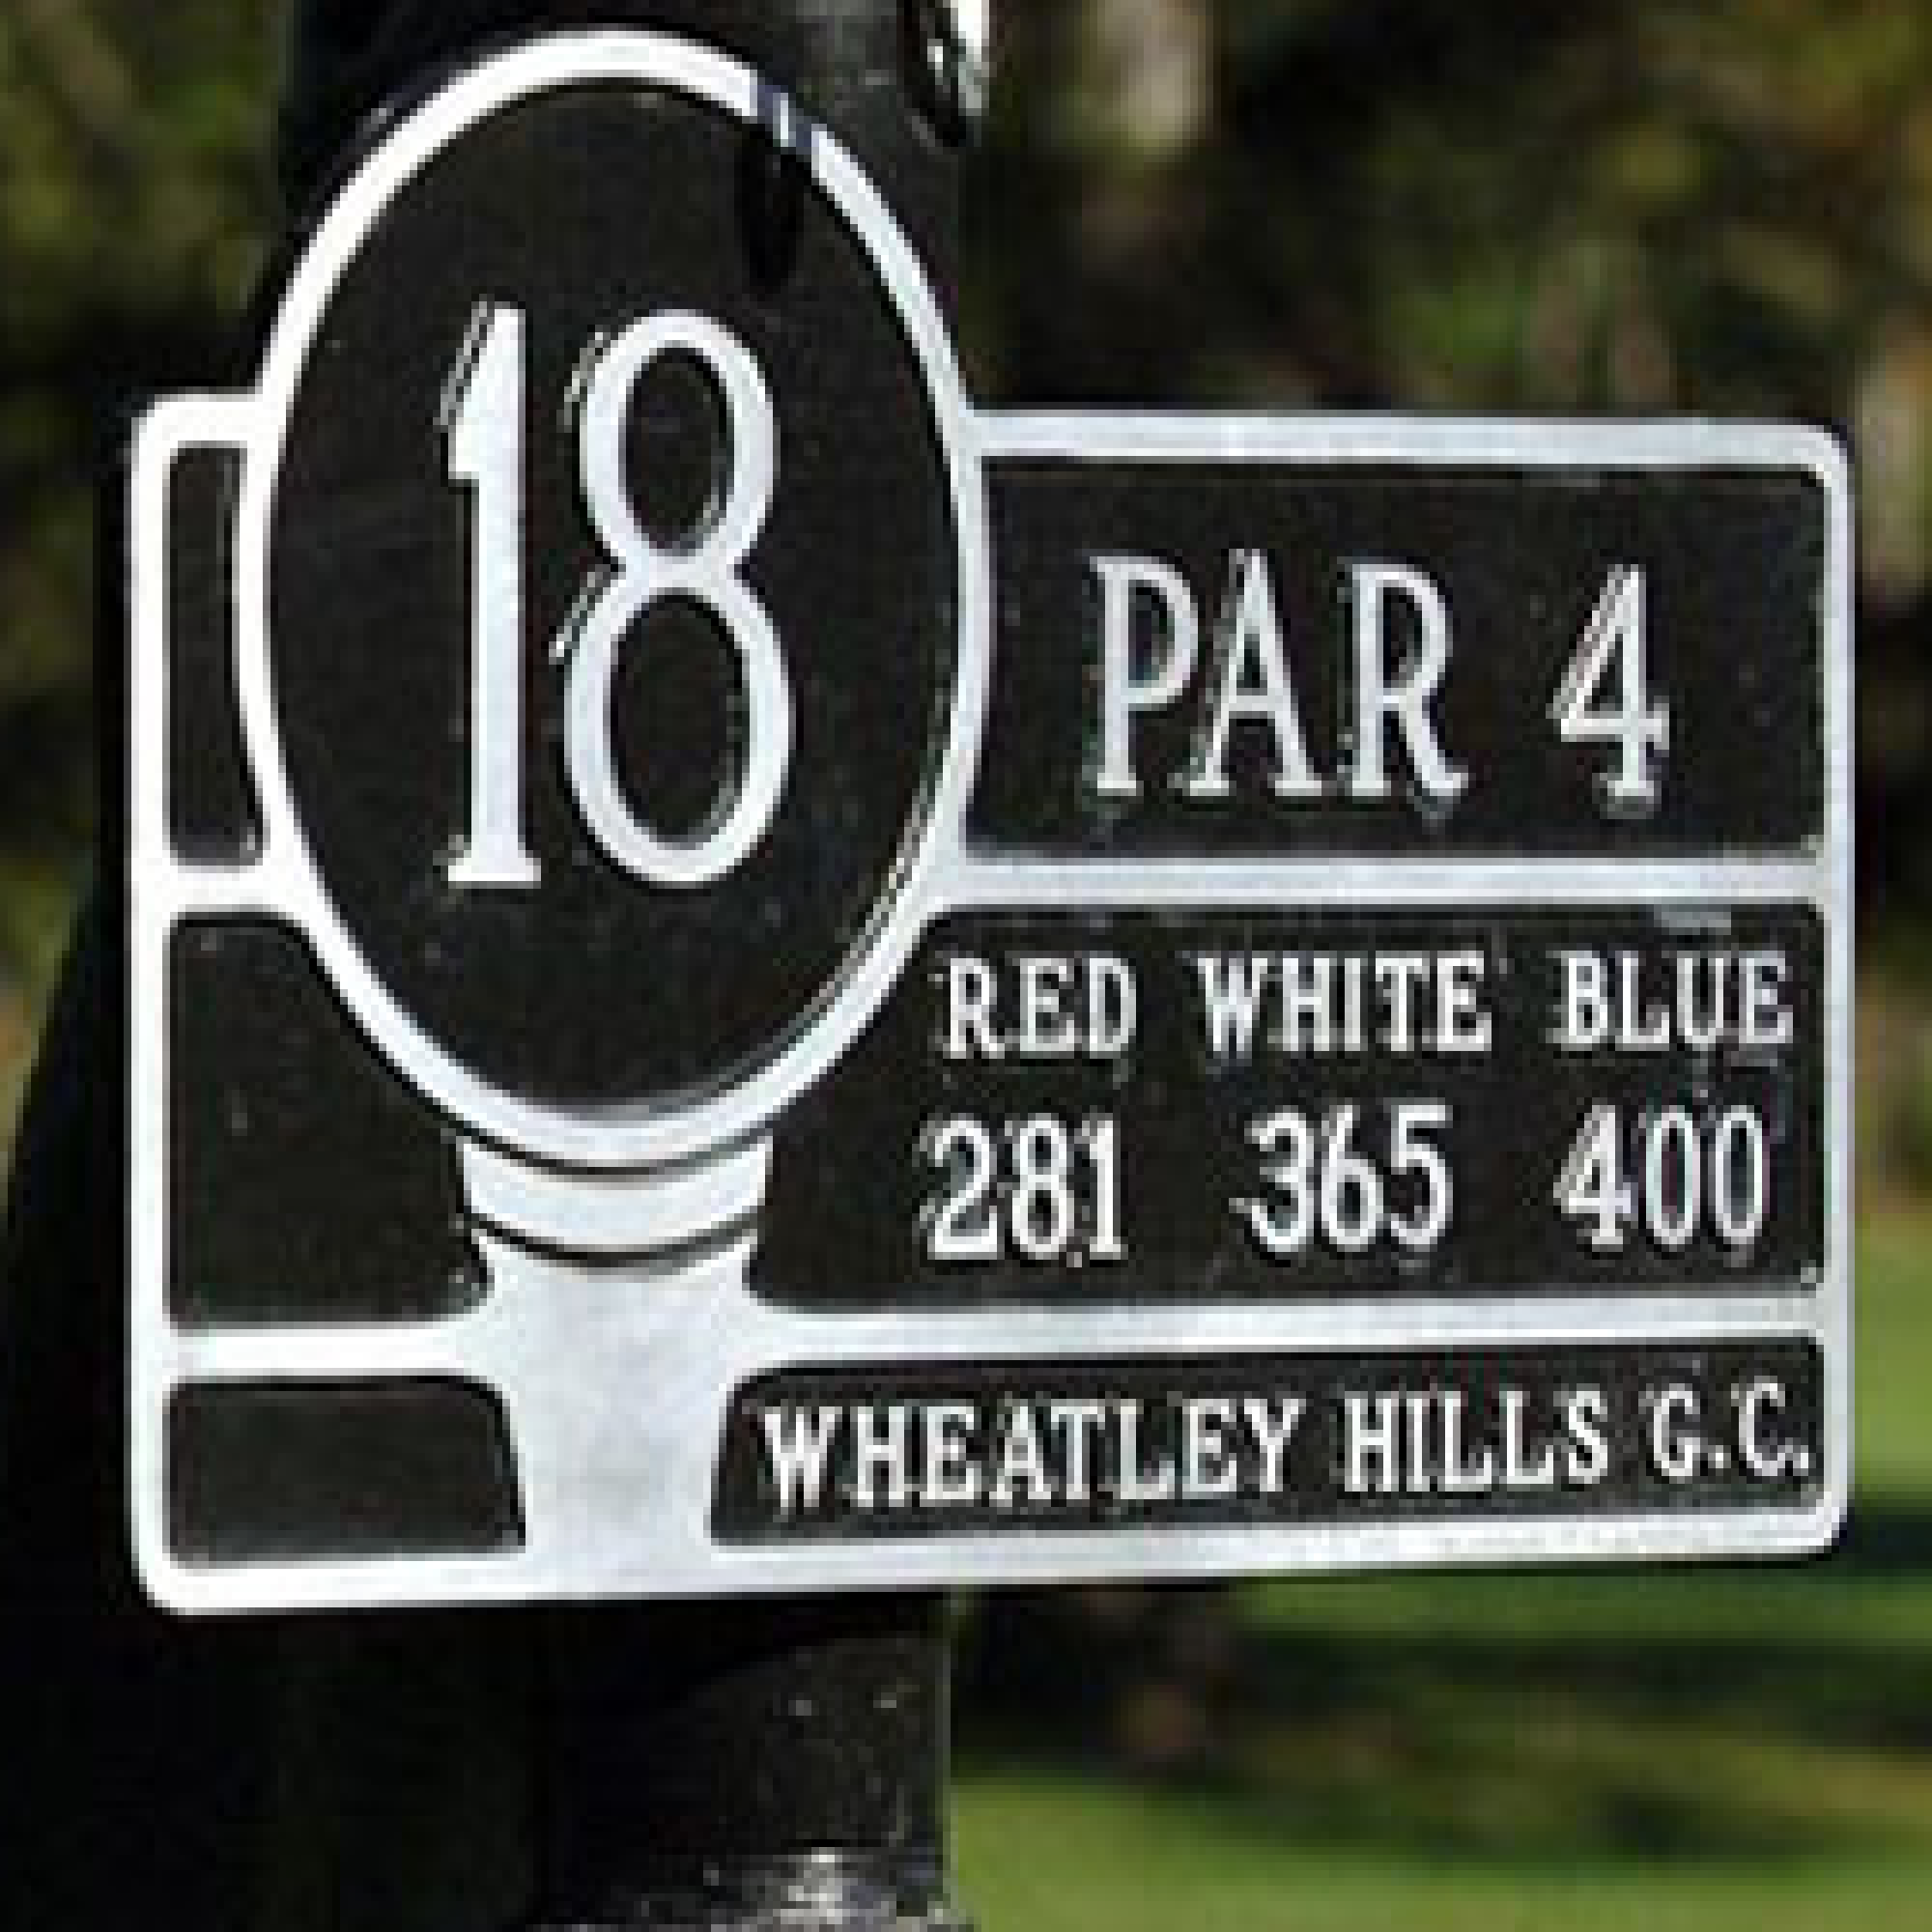 Wheatley Hills Golf Club Ryder Cup Fundraiser